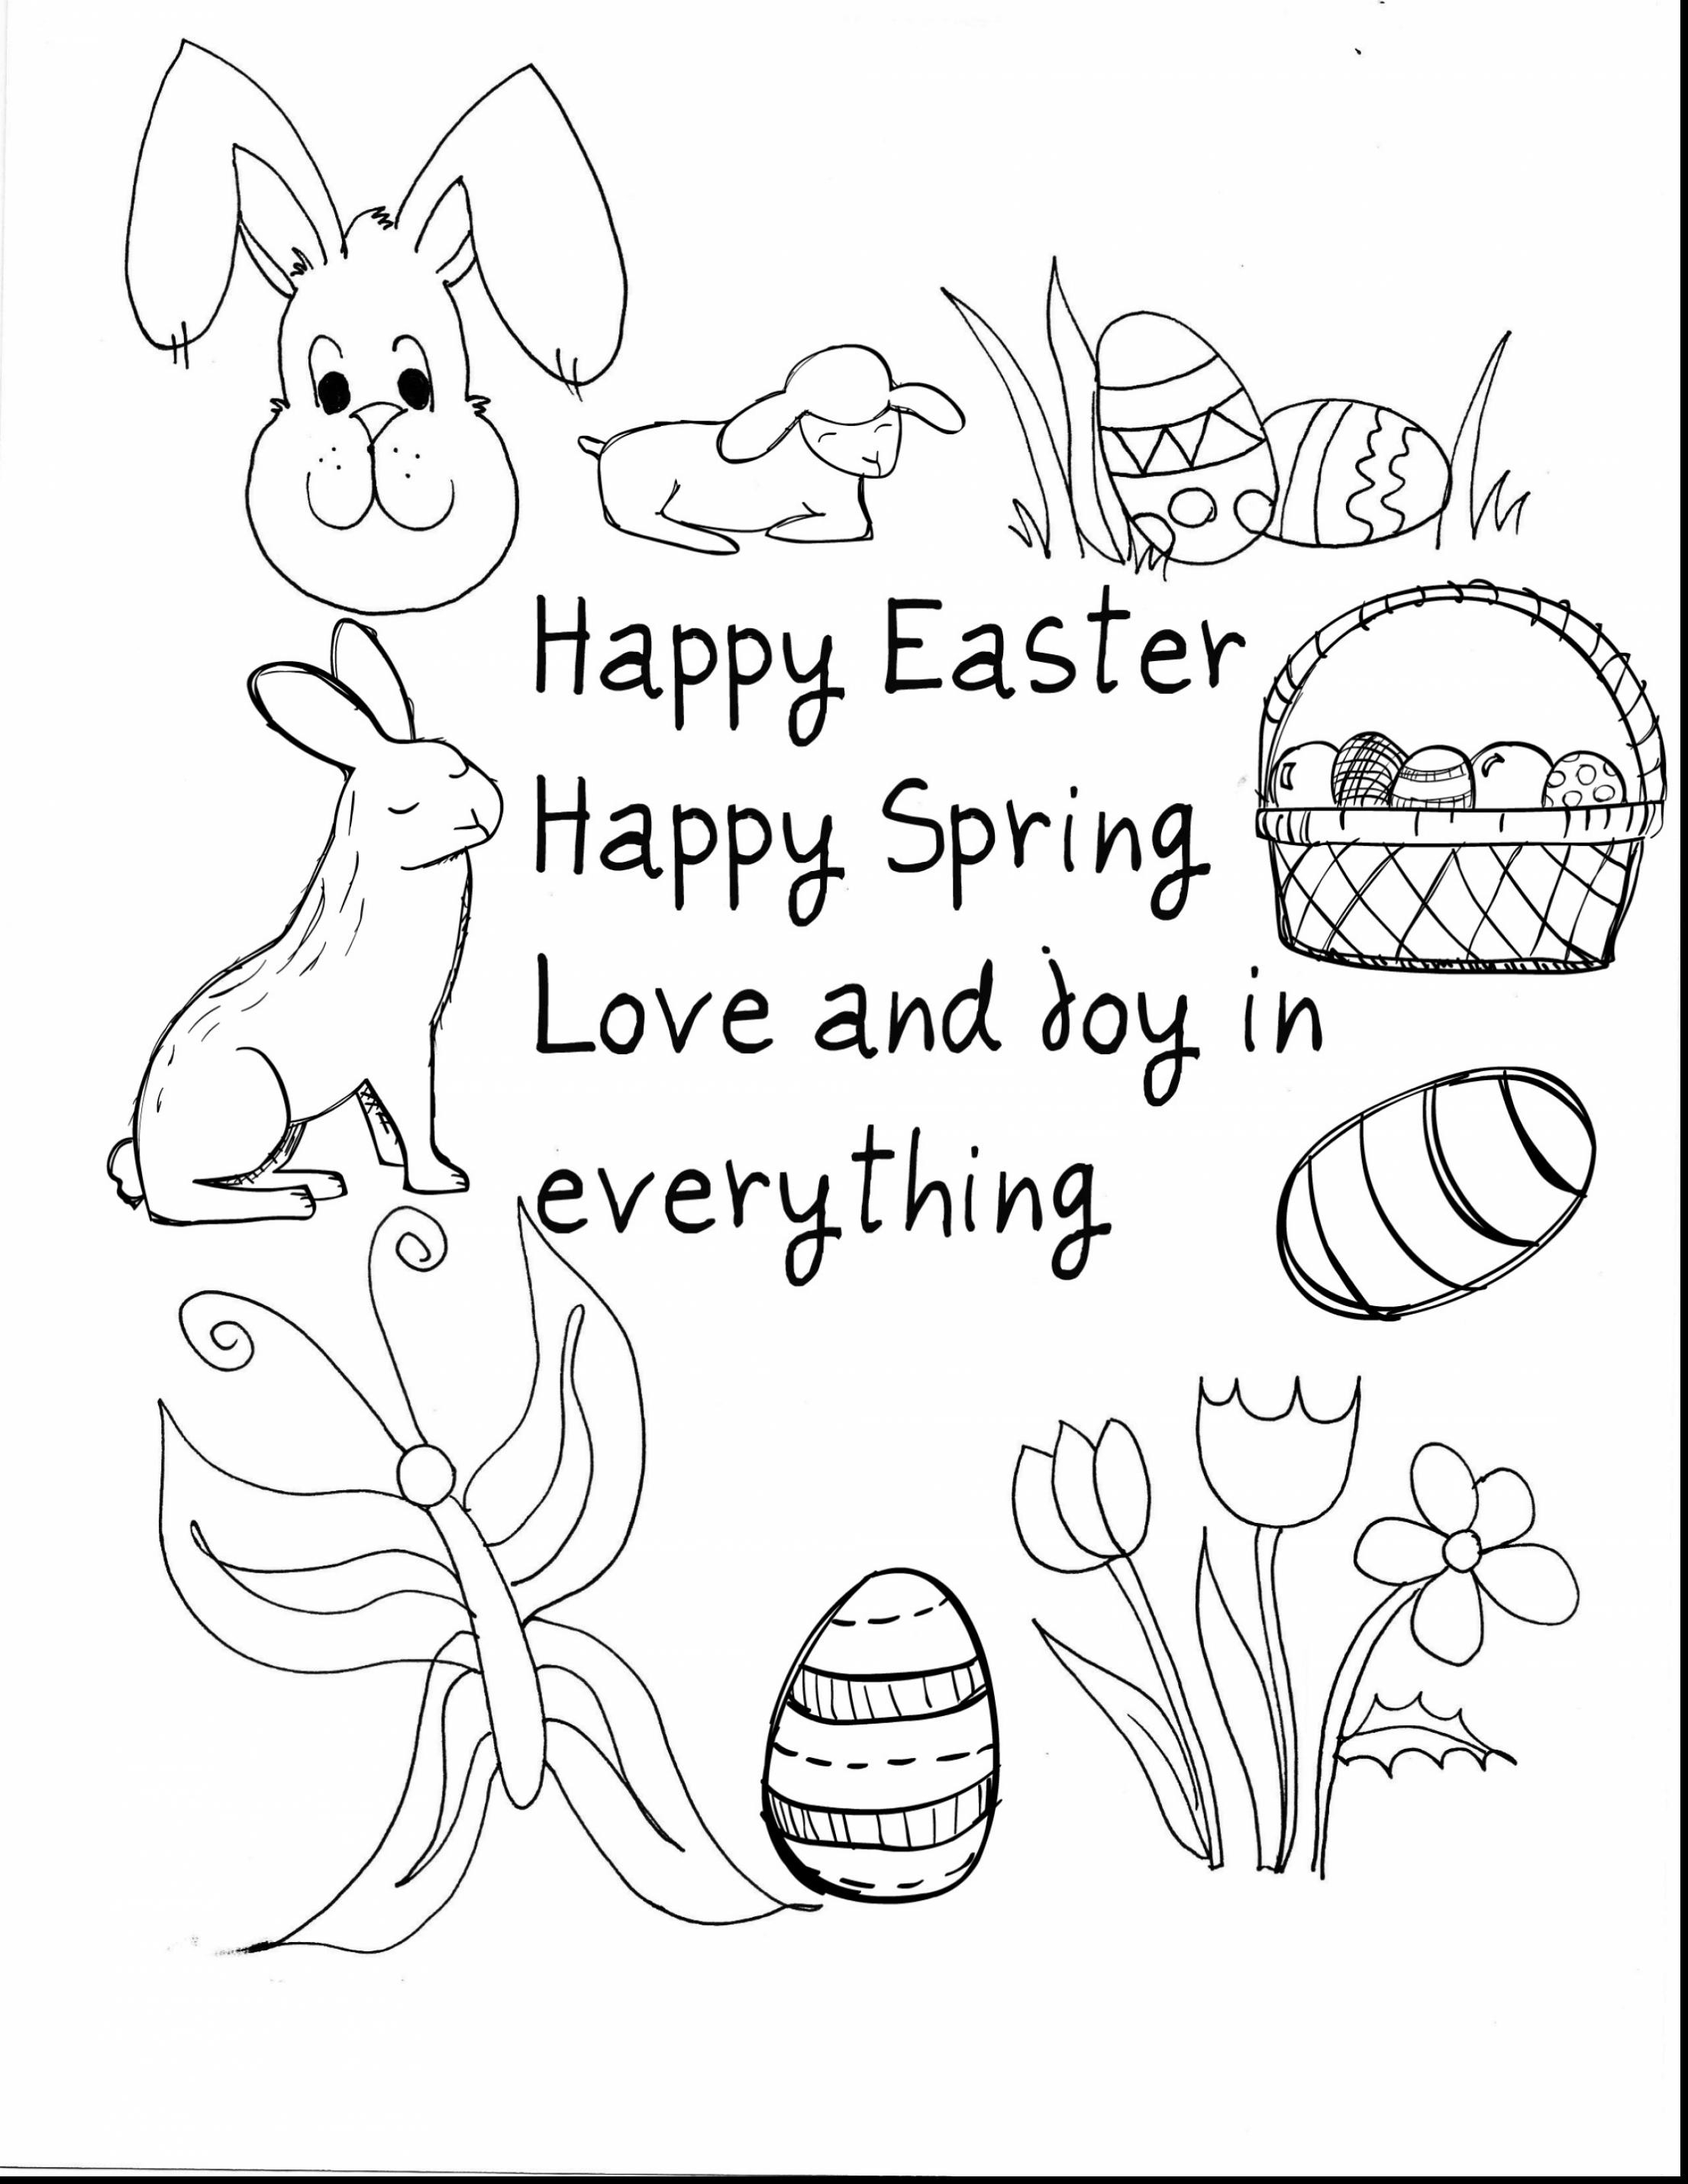 easter coloring pages activities Download-Printable Easter Coloring Pages For Preschoolers New New Printable Easter Coloring Pages For Sunday 3-l